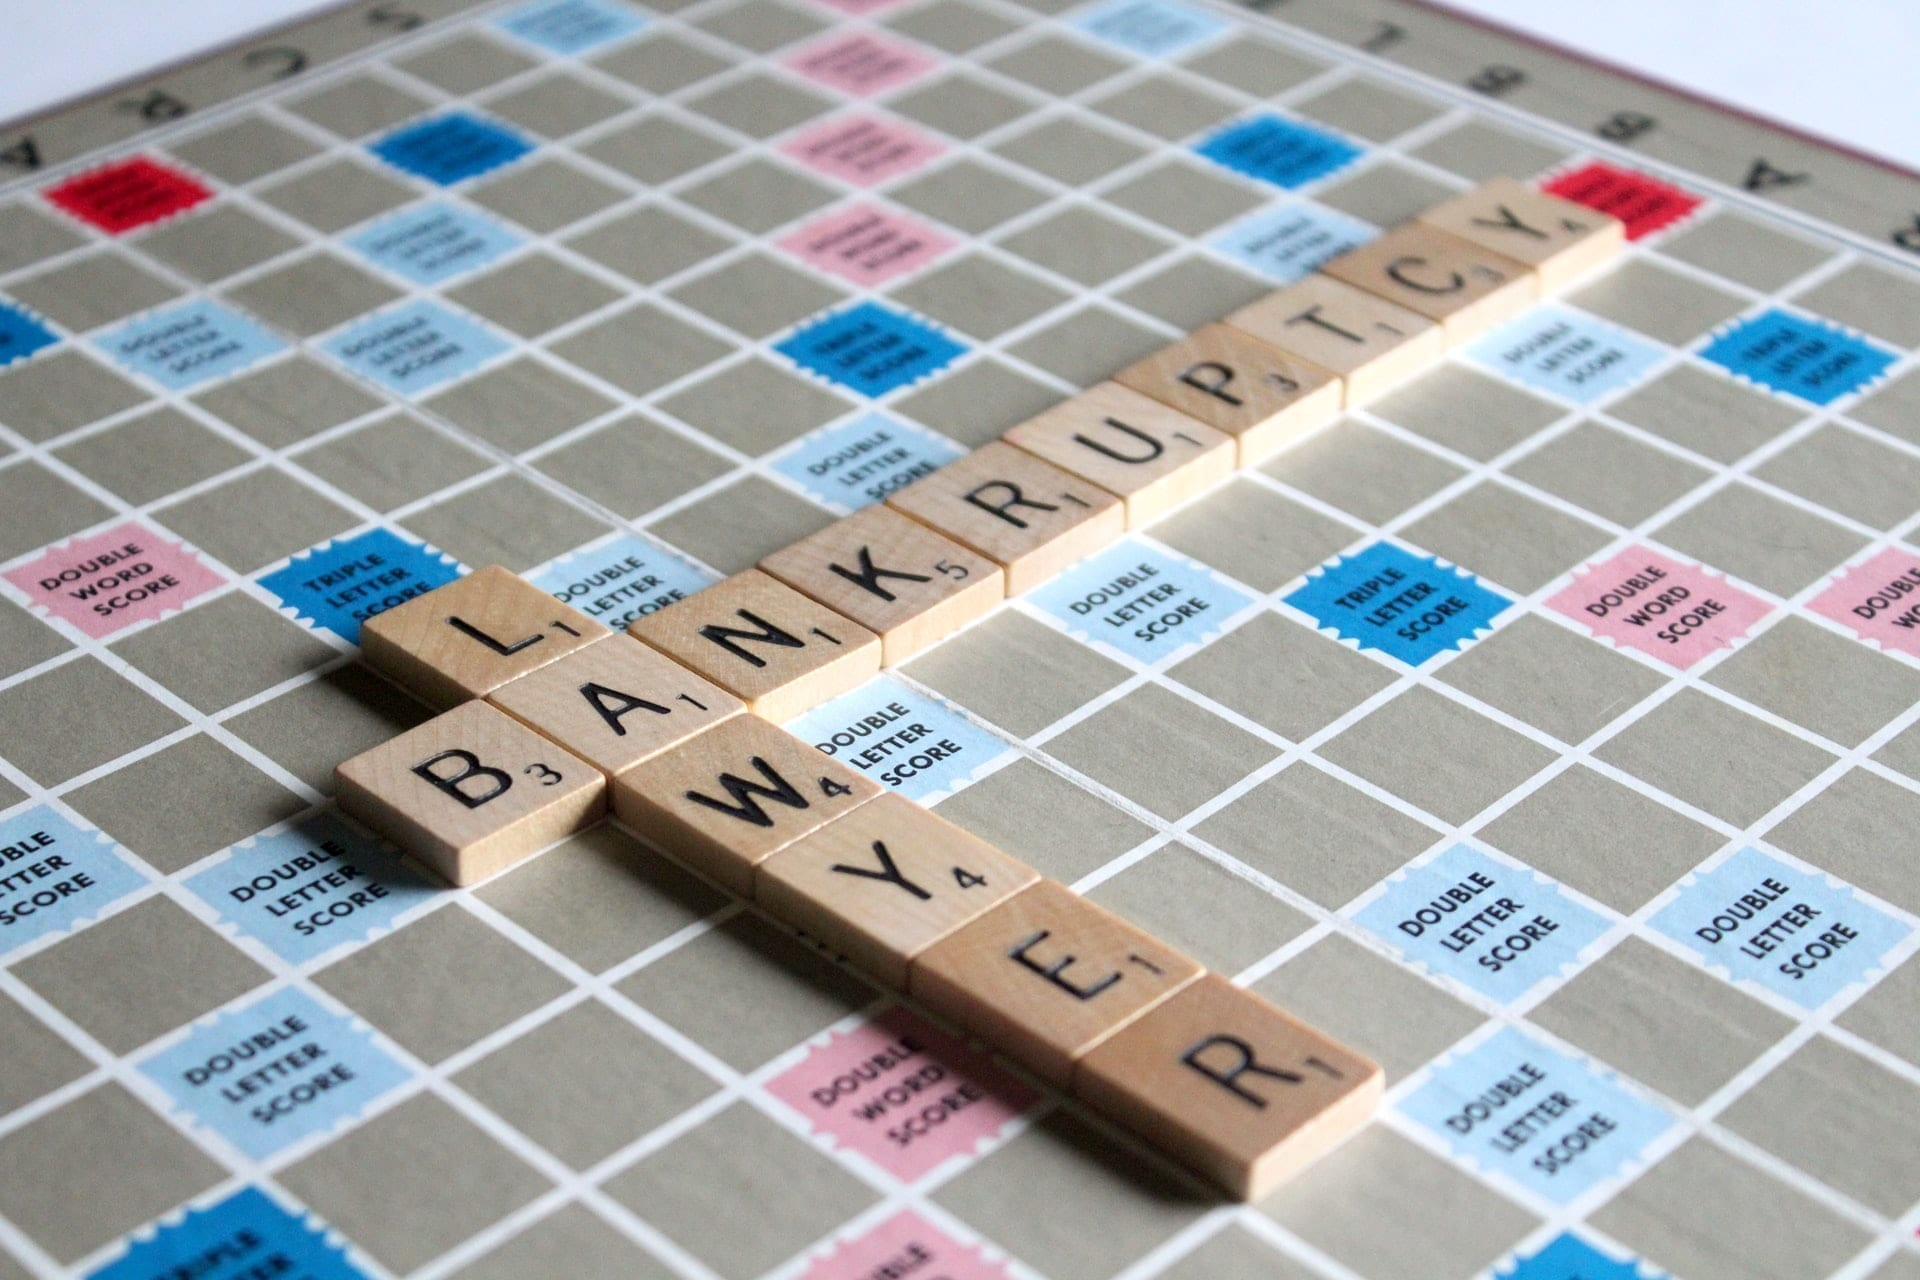 Scrabble pieces spelling out bankruptcy lawyer